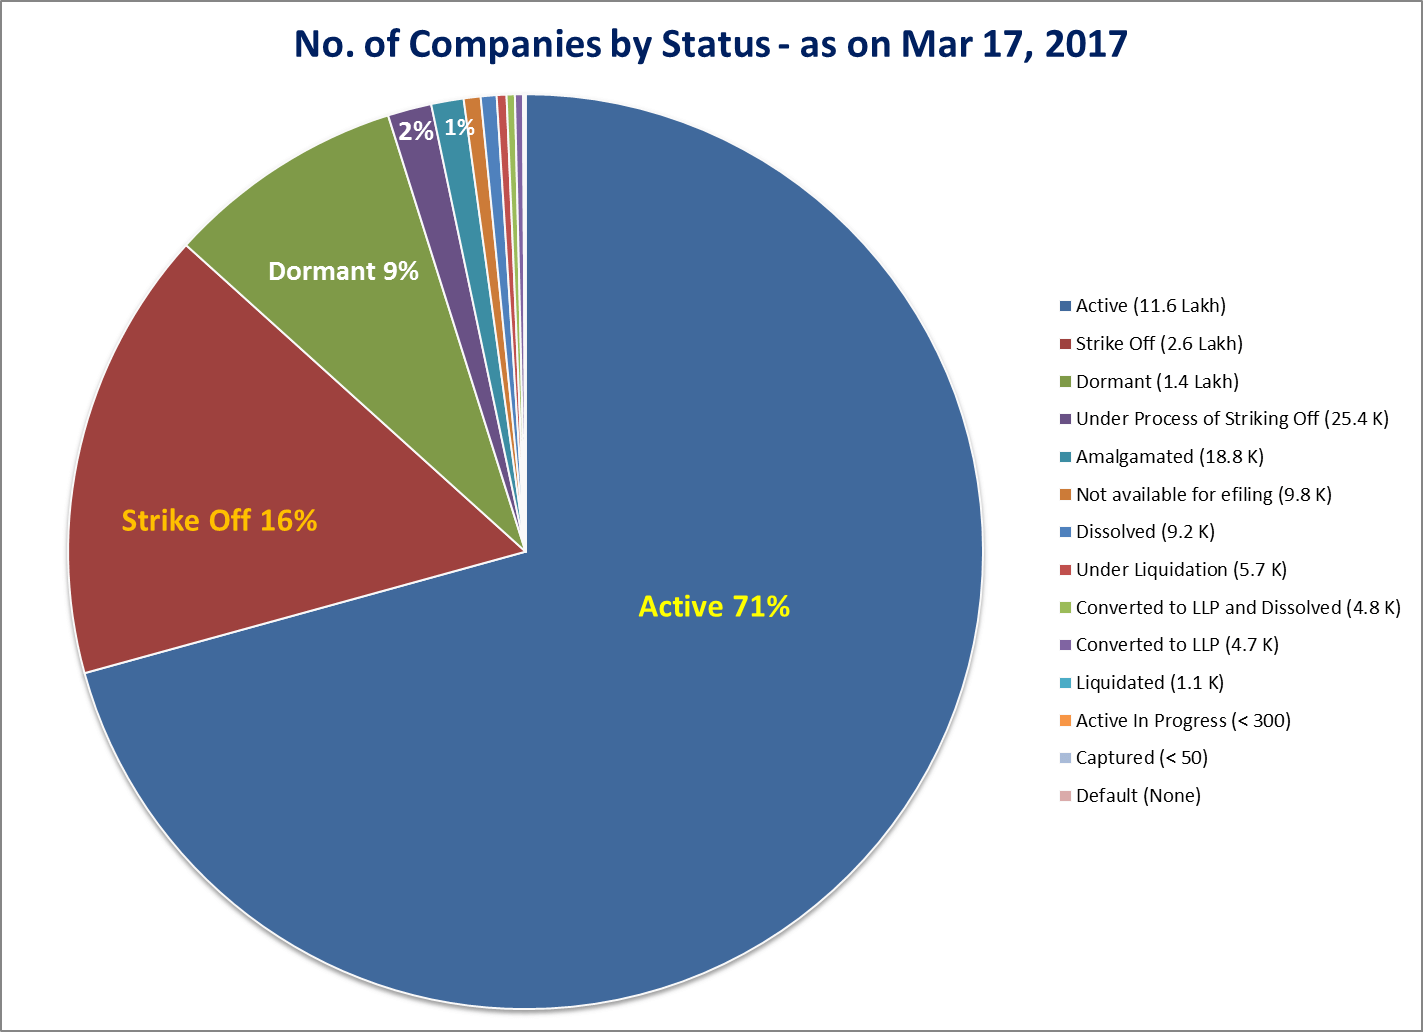 Number of Indian Companies by Status